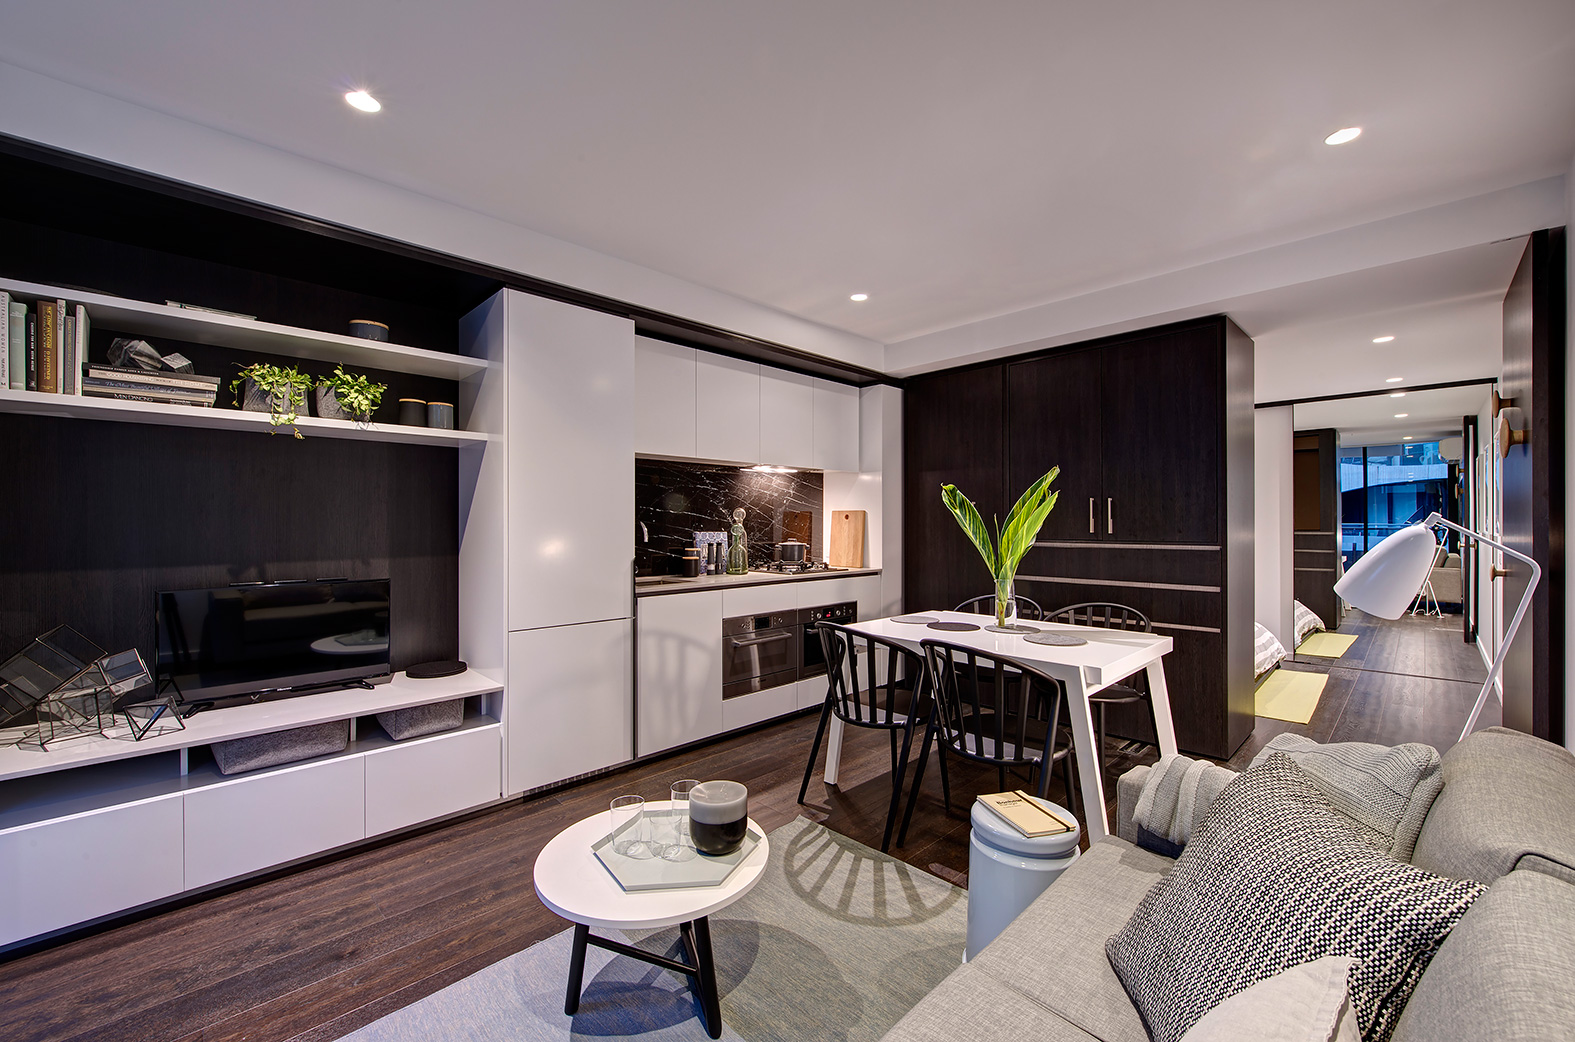 Interiors project in Melbourne, VIC